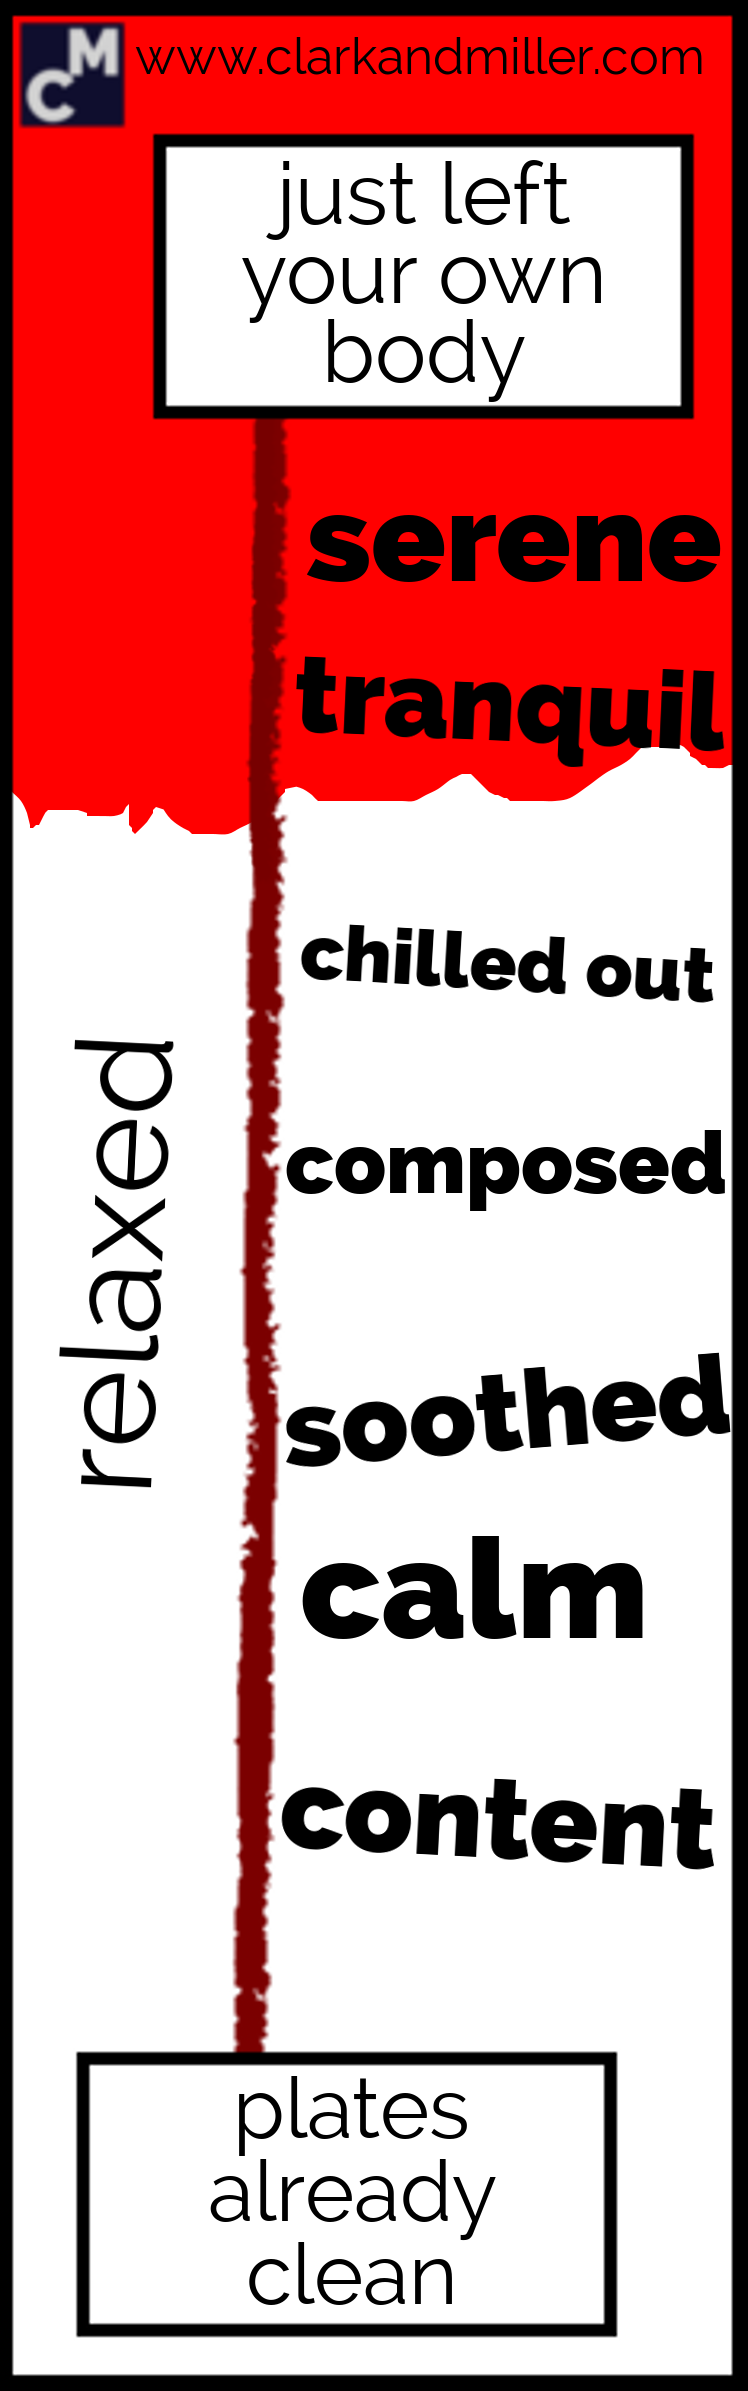 Words for relaxed: serene, tranquil, chilled out, composed, soothed, calm, content